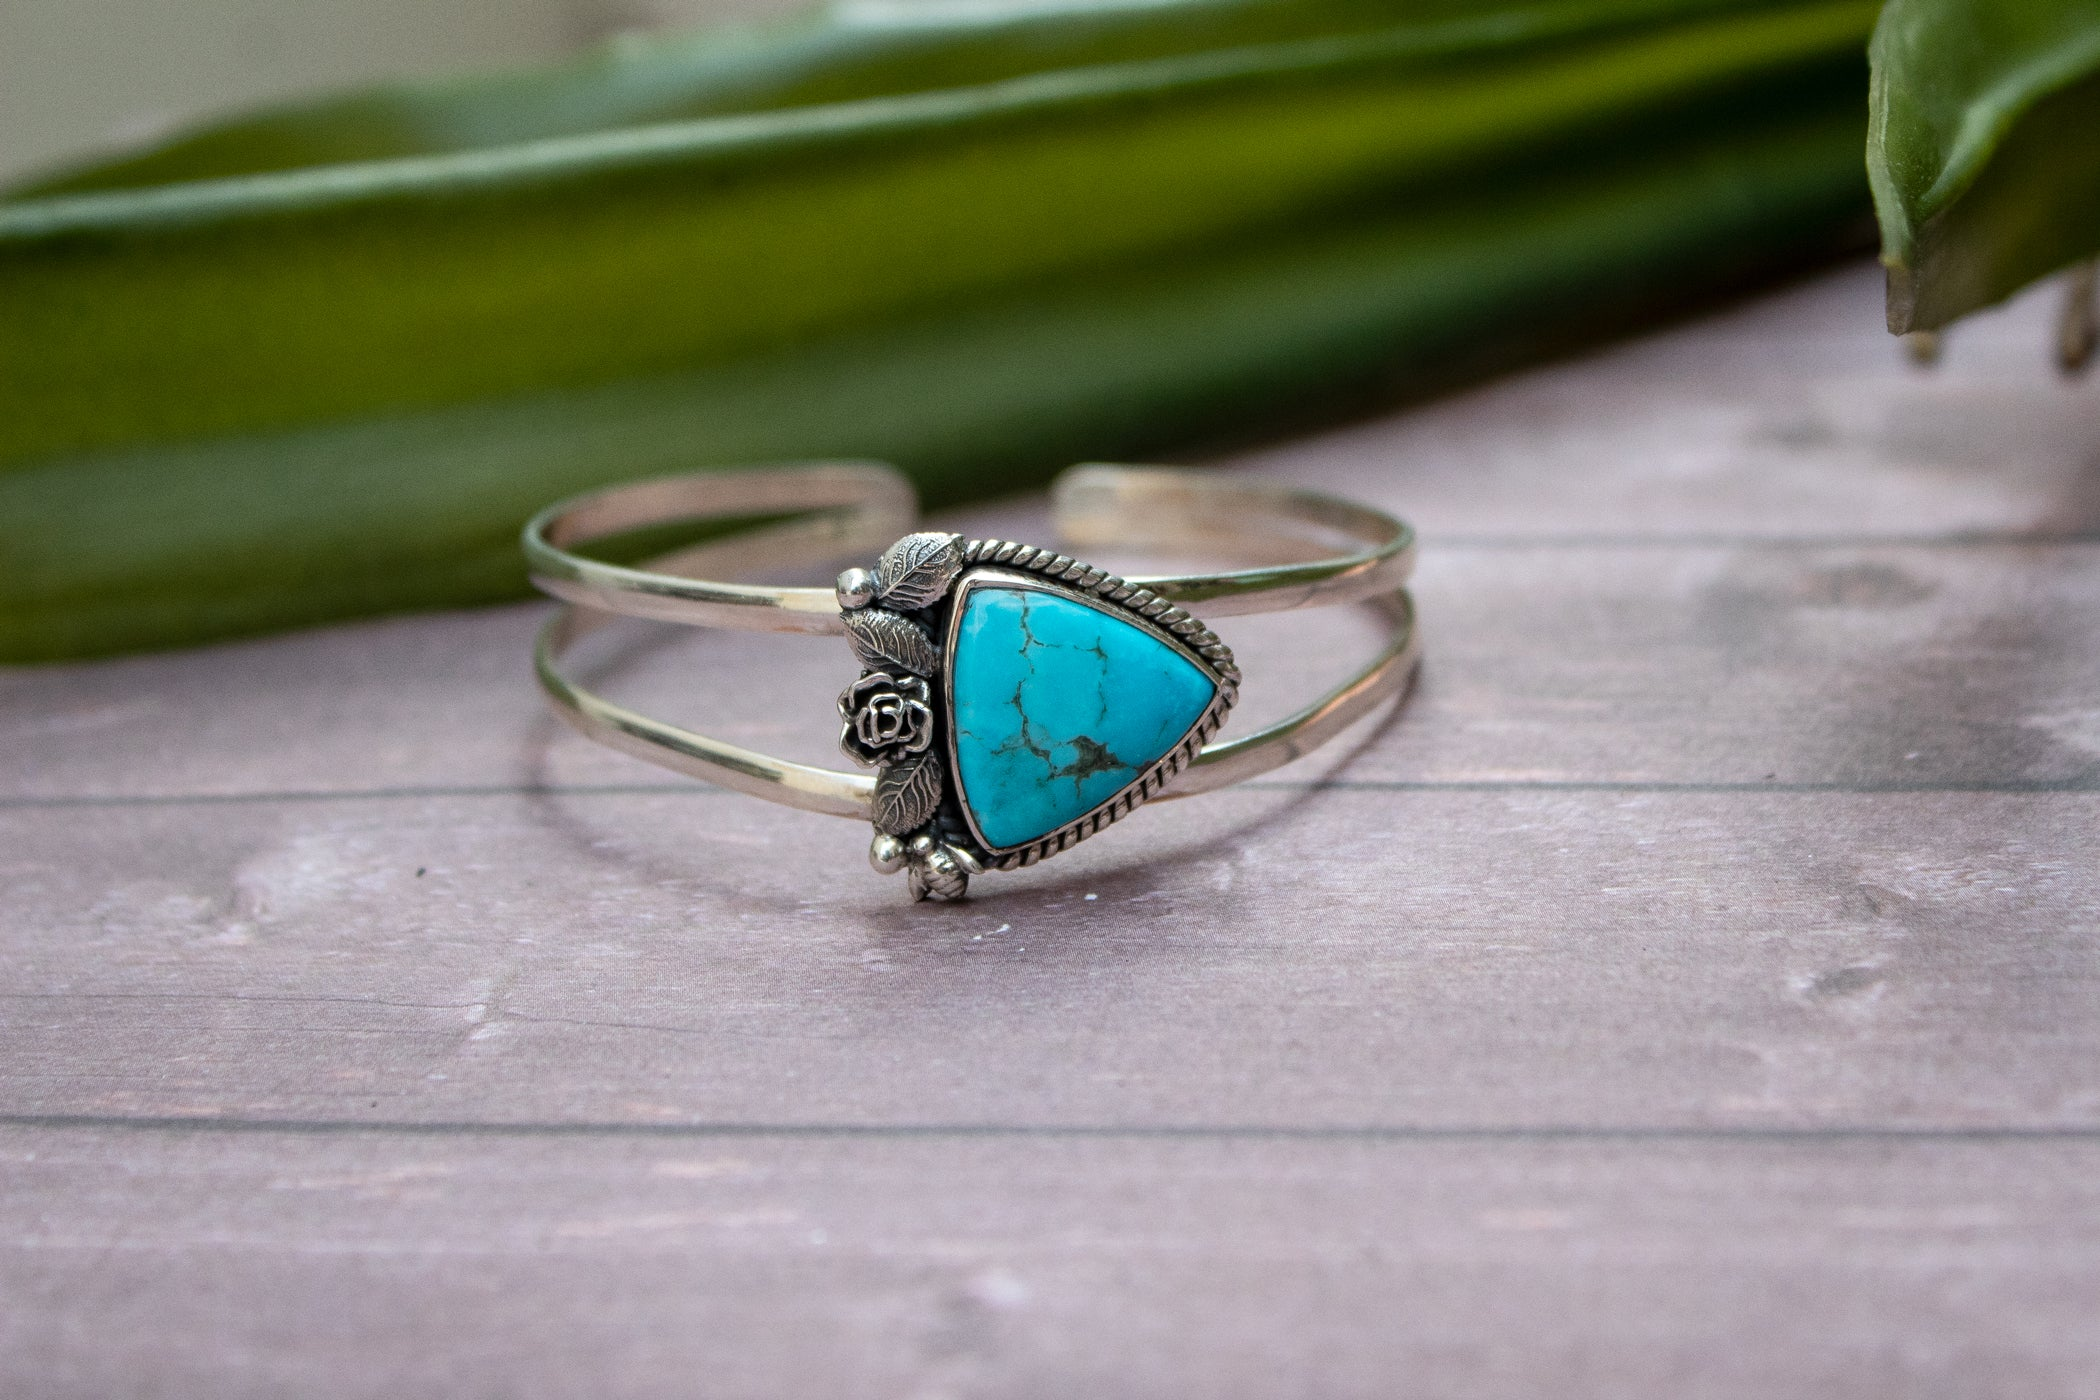 Floral Turquoise Cuff Bracelet, AB-3017